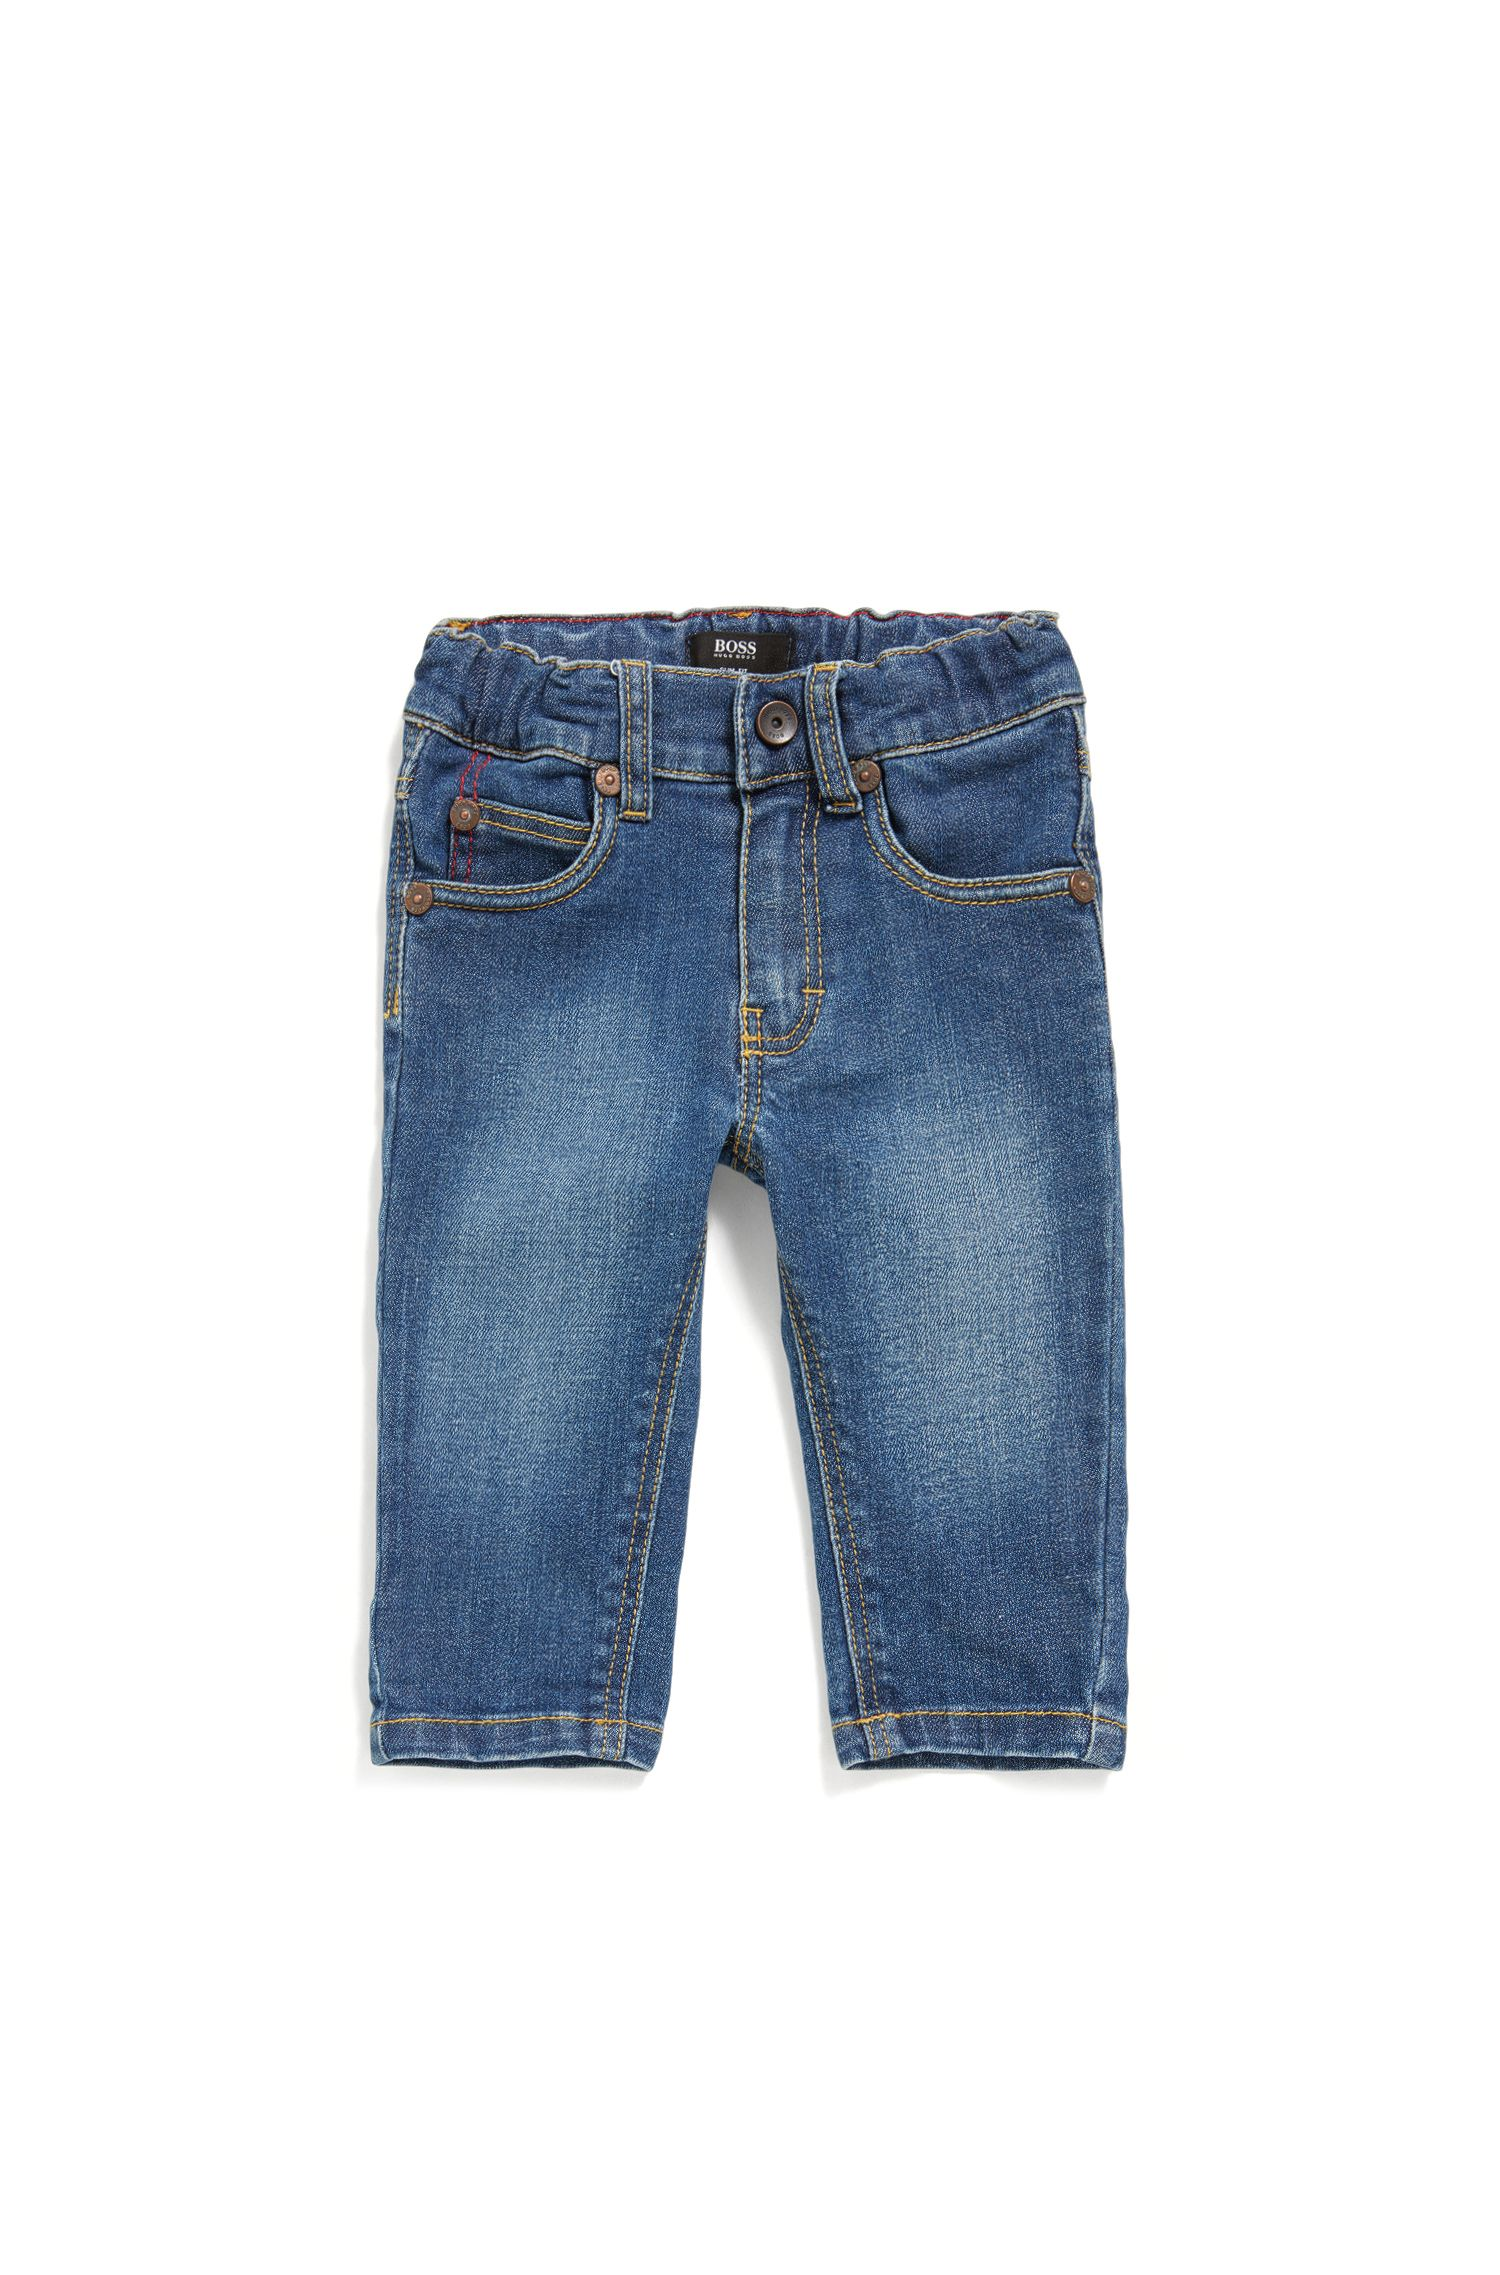 Baby-Jeans aus Stretch-Baumwolle im Five Pocket-Stil: 'J04264'